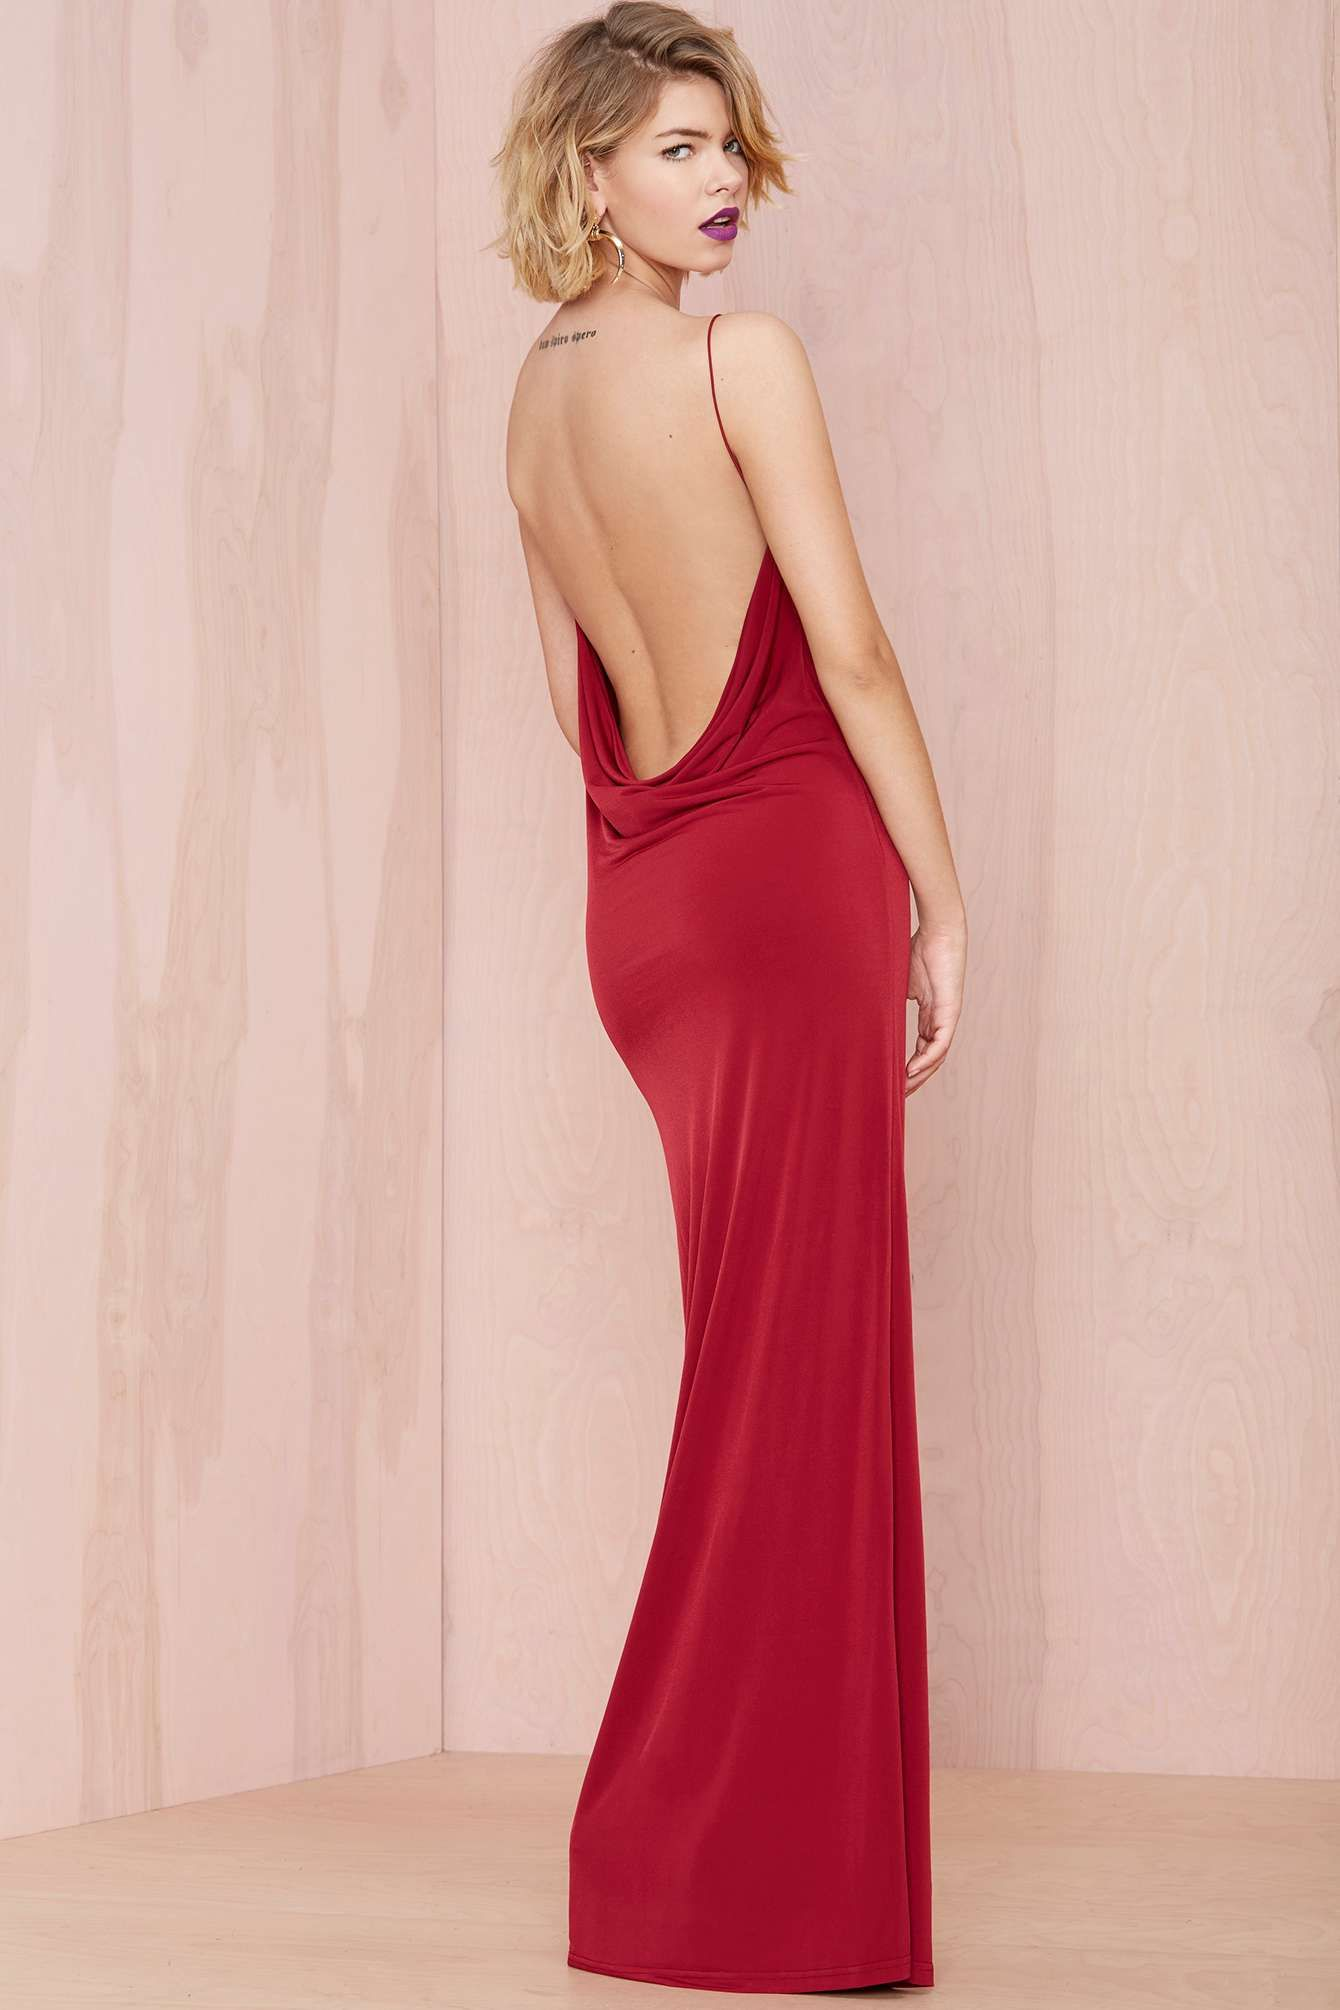 Never Look Back Dress | Shop Clothes at Nasty Gal | dressed ...